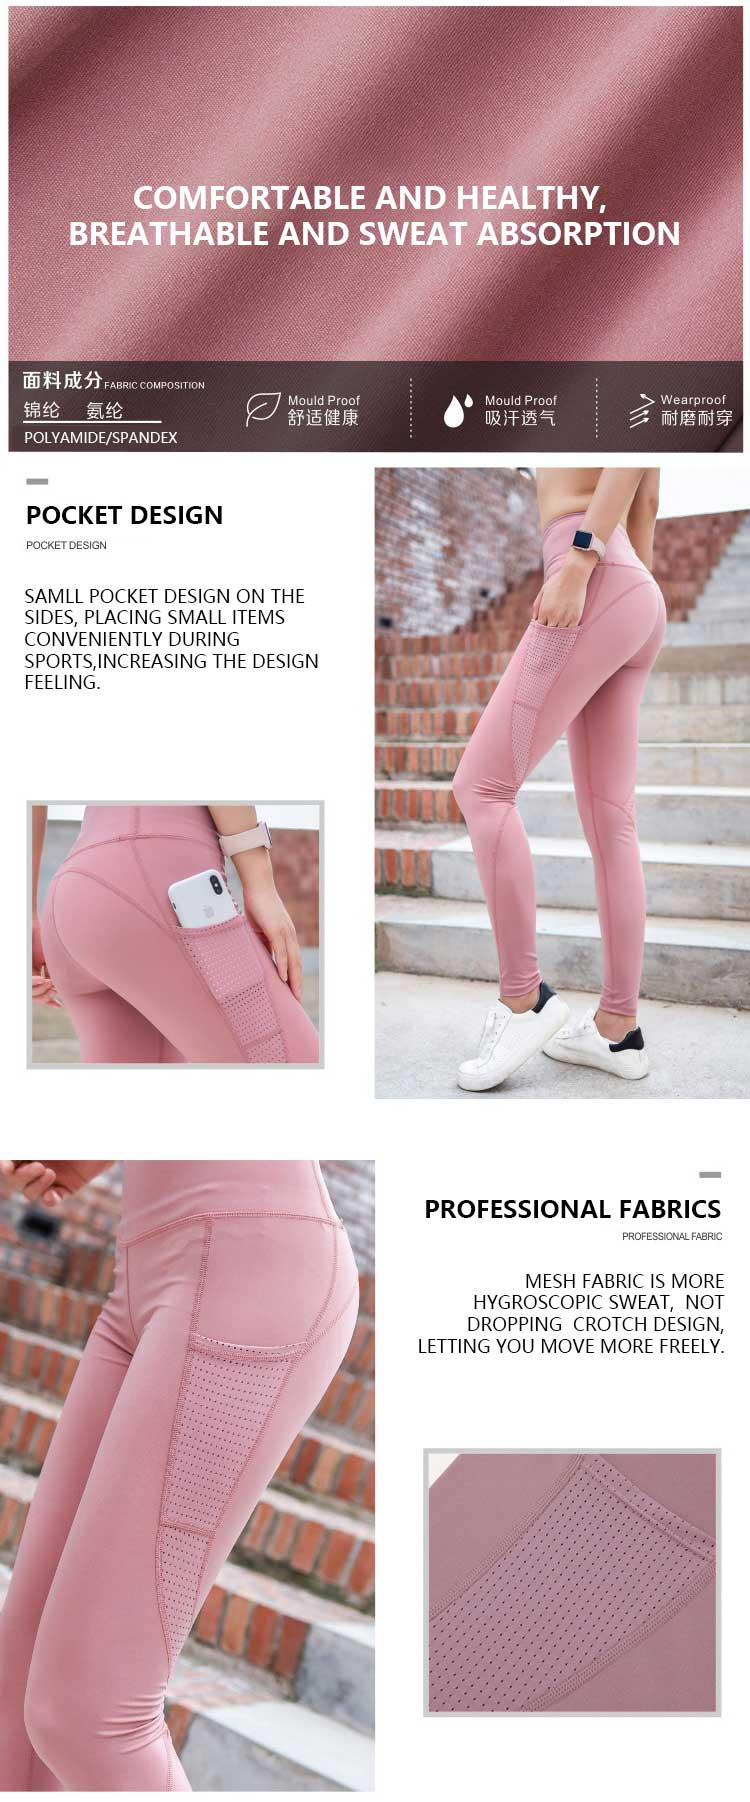 Soft and comfortable fabric can ensure good wearing feeling for this workout pants with side pockets